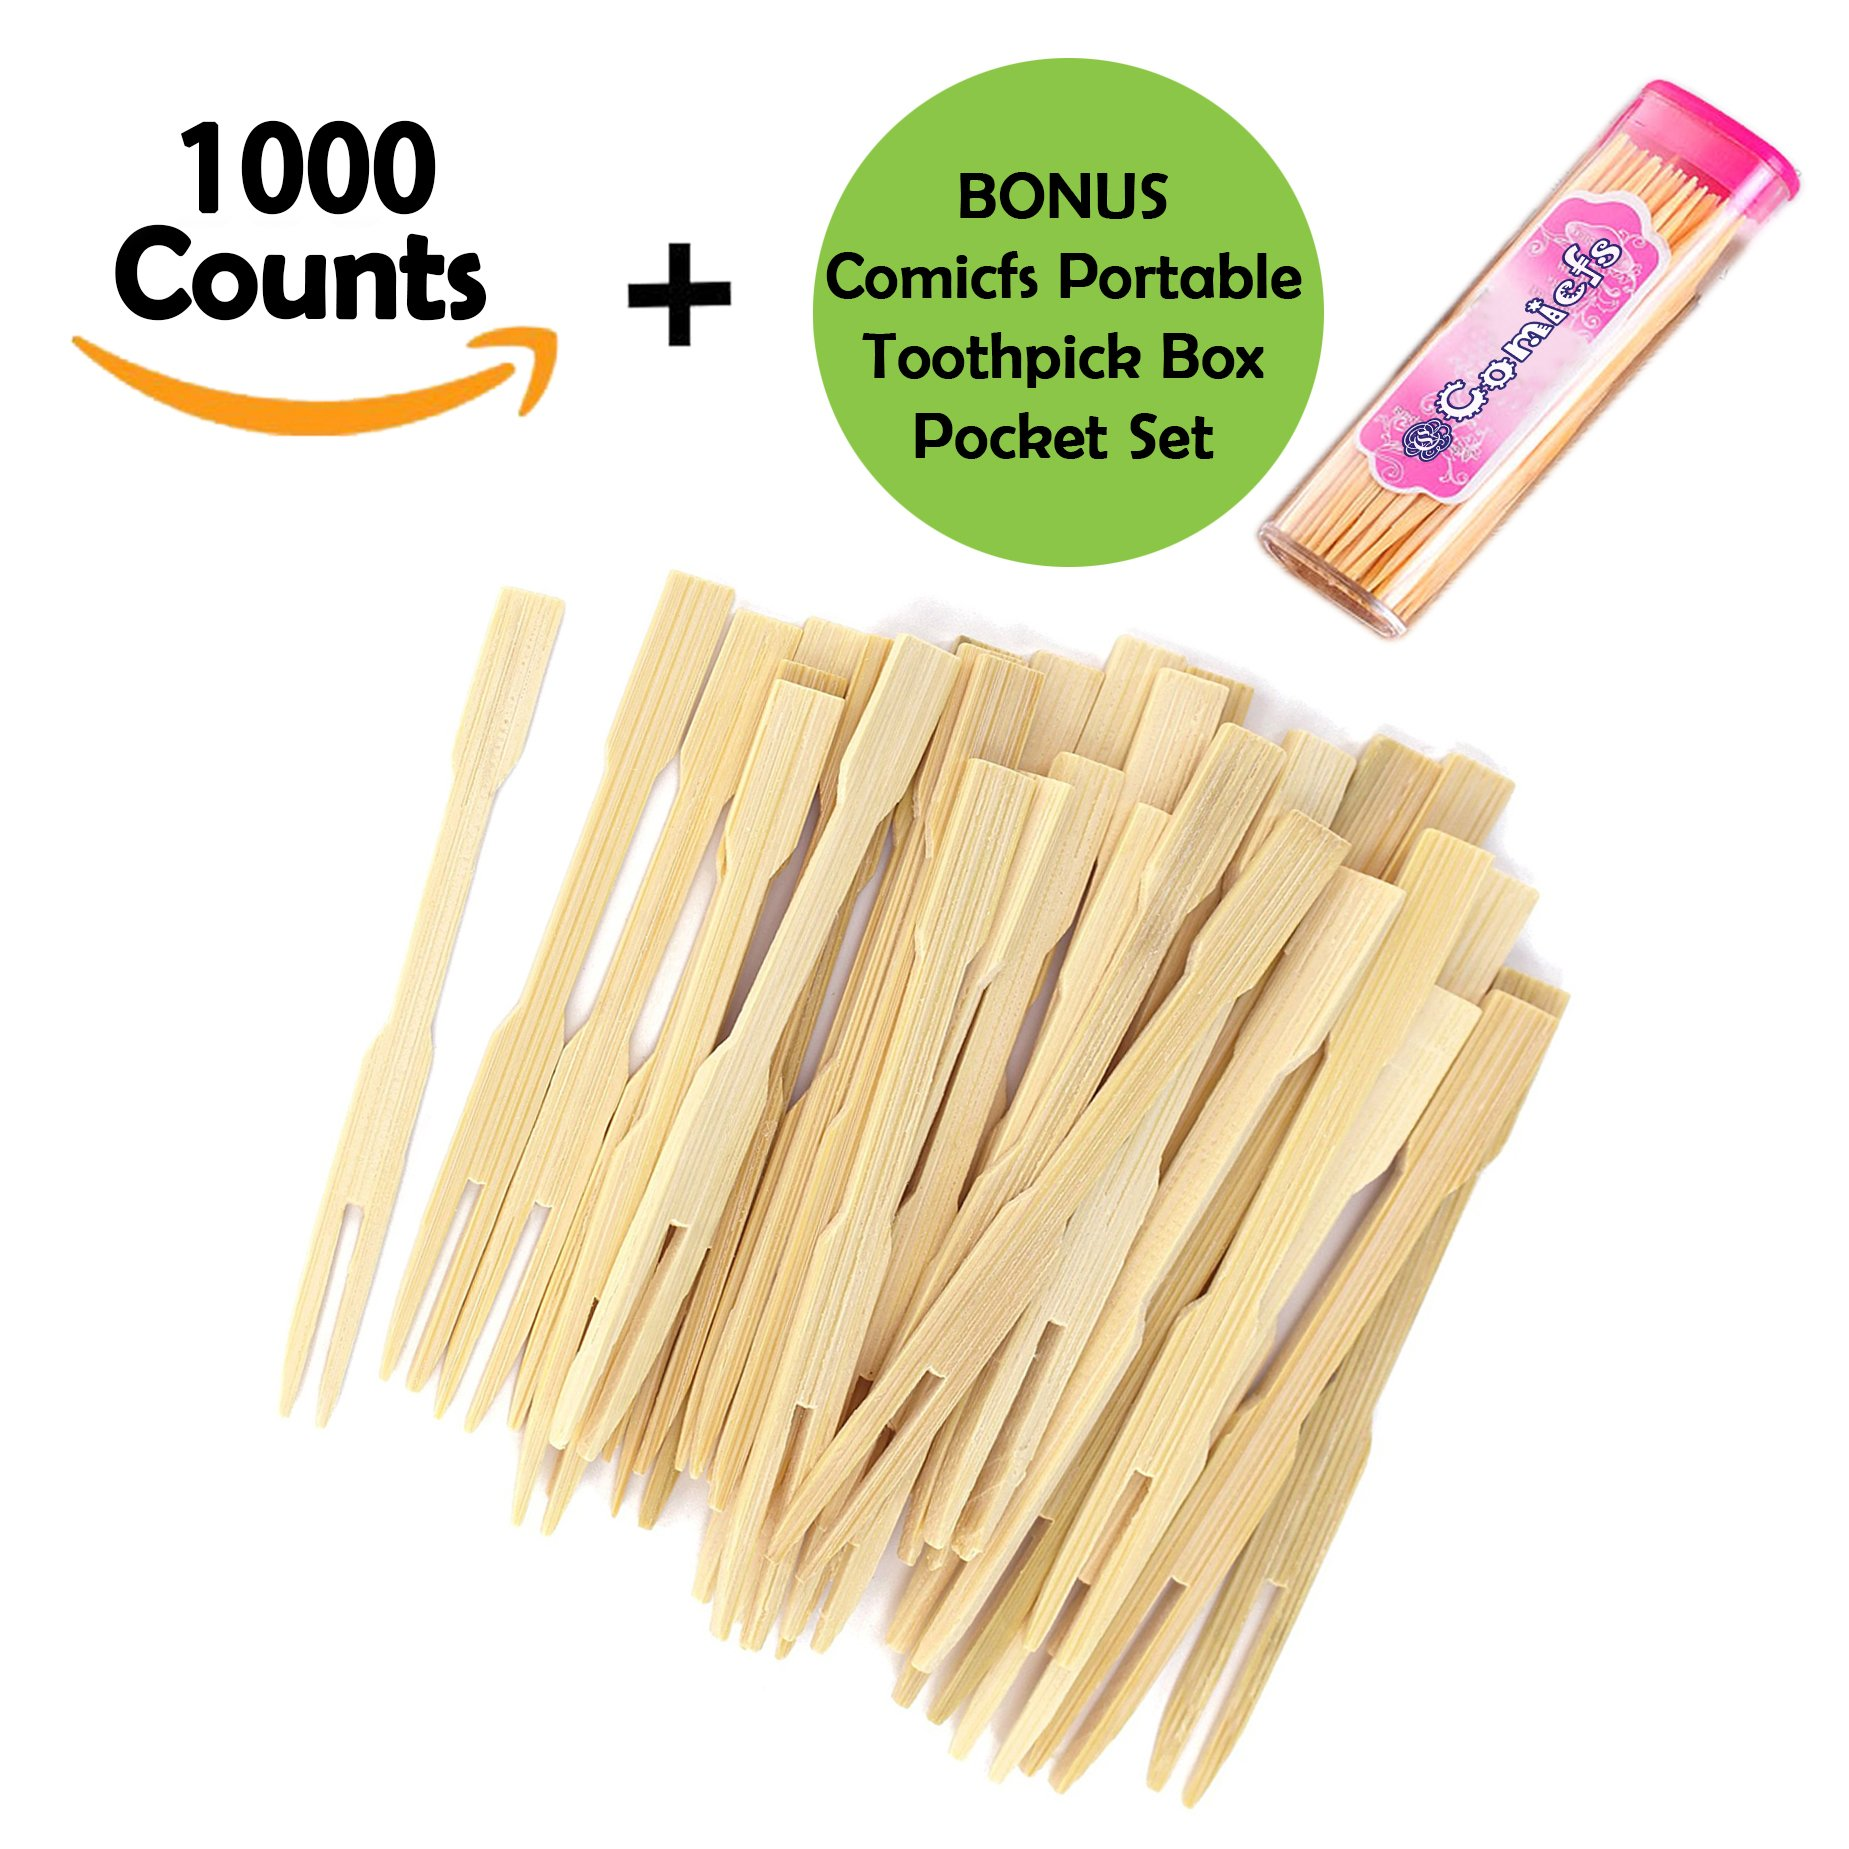 Comicfs 3.5'' Bamboo Fruit Picks/Mini Cocktail Forks/Party Forks/Buffet Mini Forks 1000 Counts BONUS Comicfs Portable Toothpick Box Pocket Set